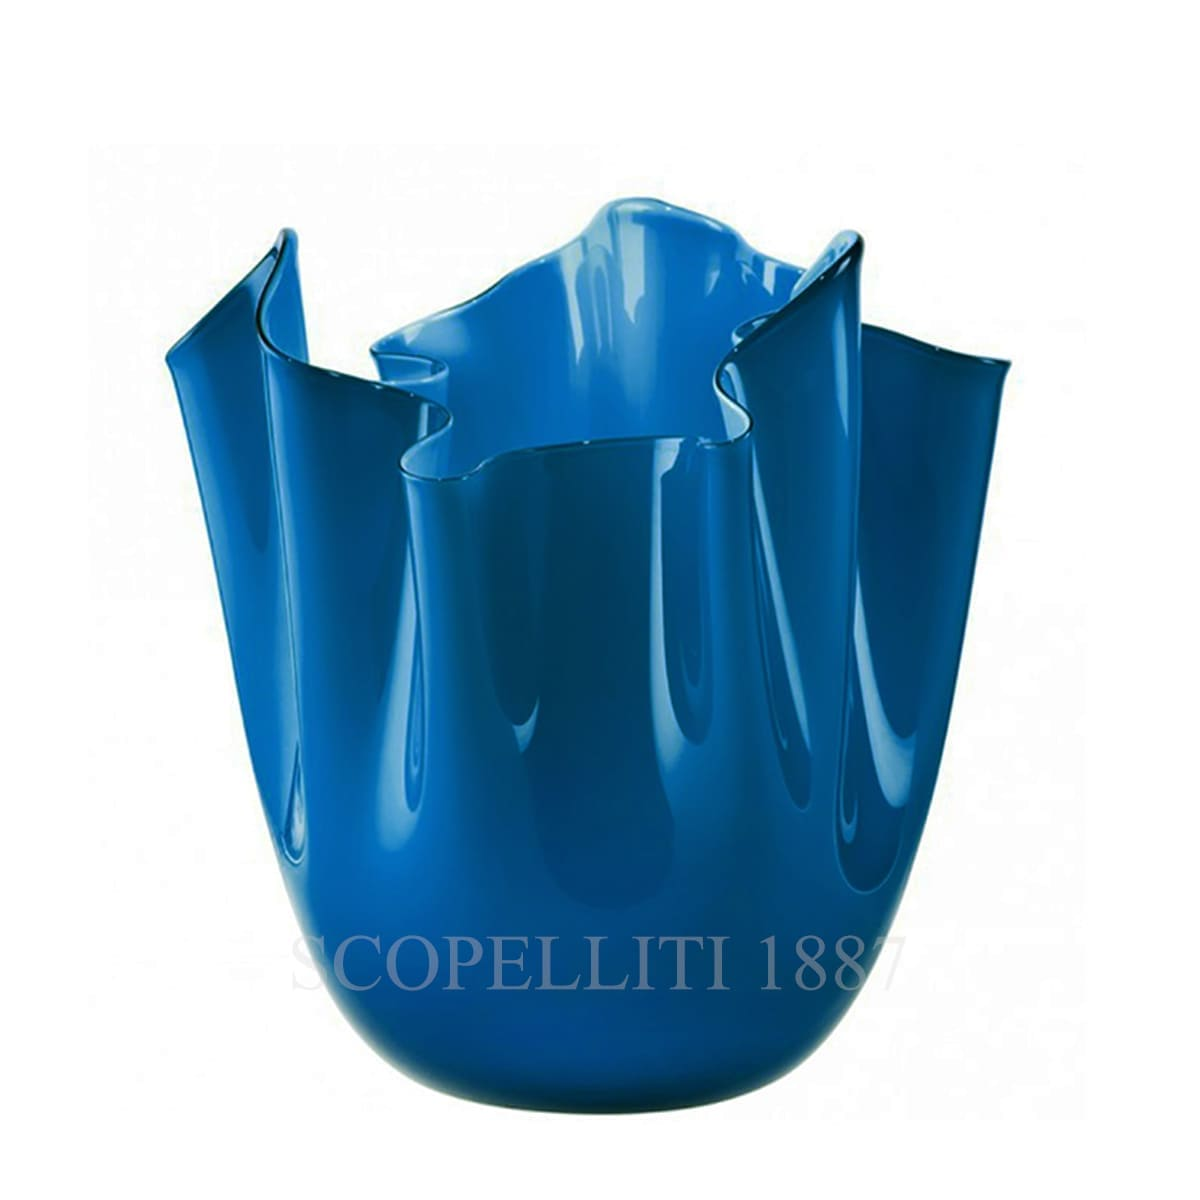 venini fazzoletto blue vase murano glass